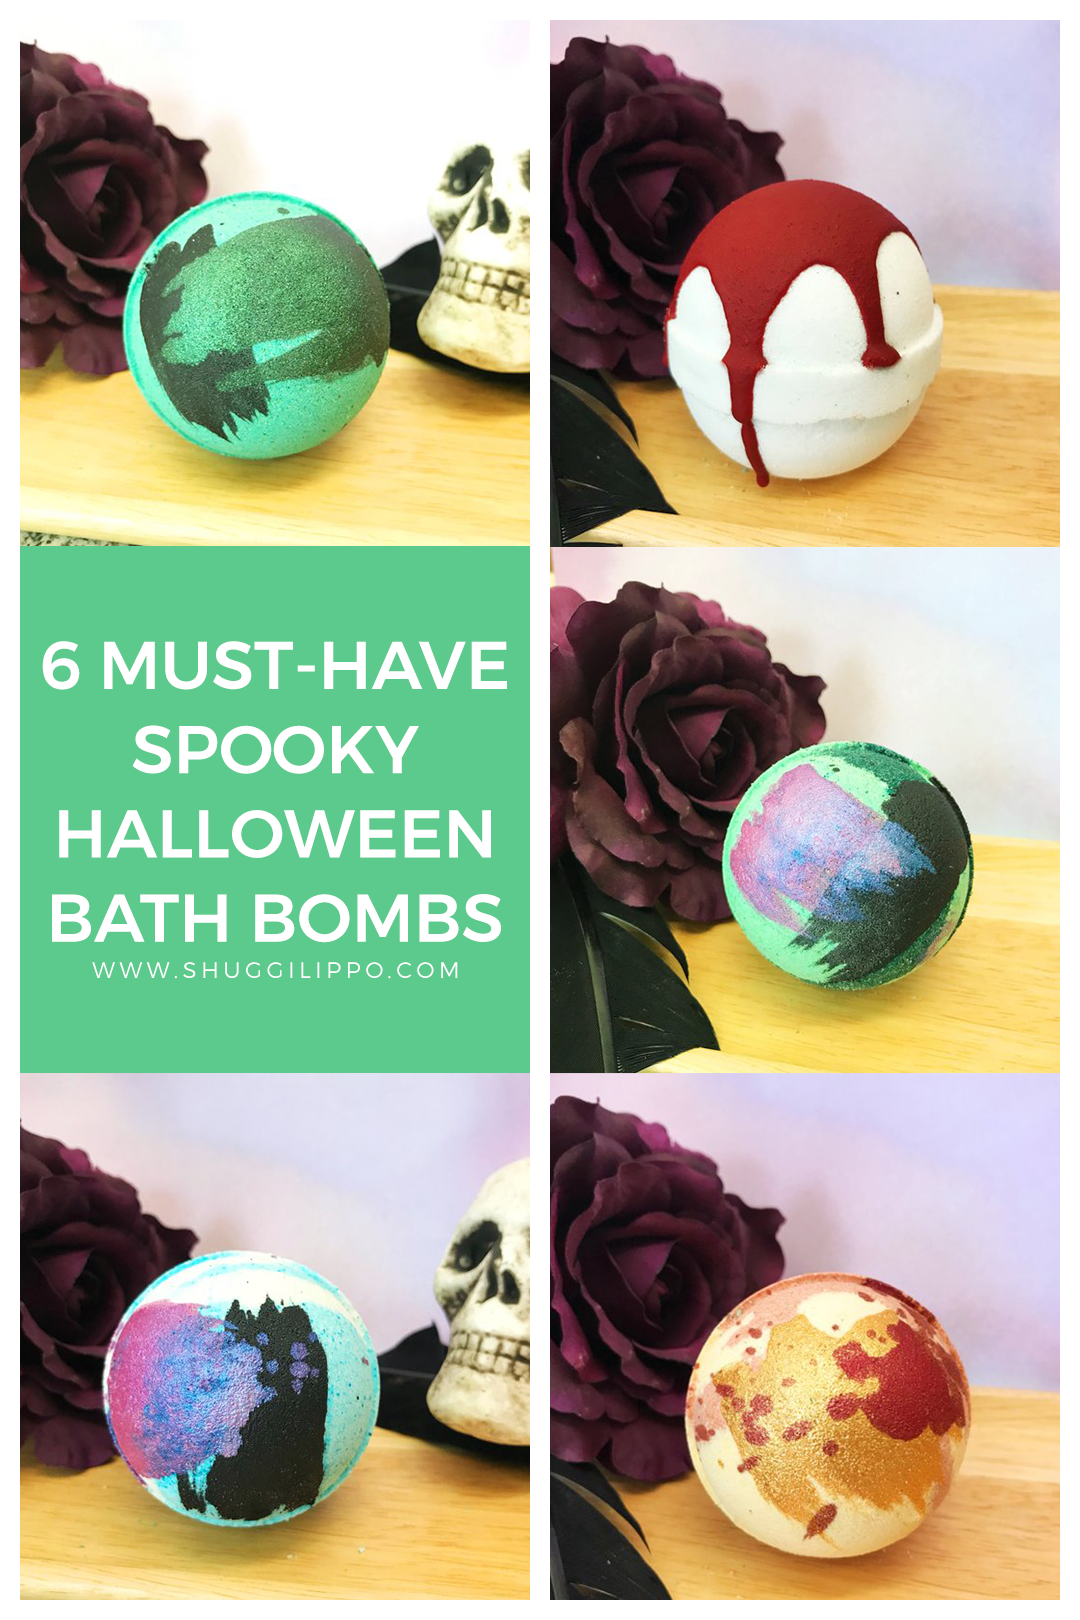 6 Must-Have Spooky Halloween Bath Bombs by Whipped Up Wonderful via @shuggilippo